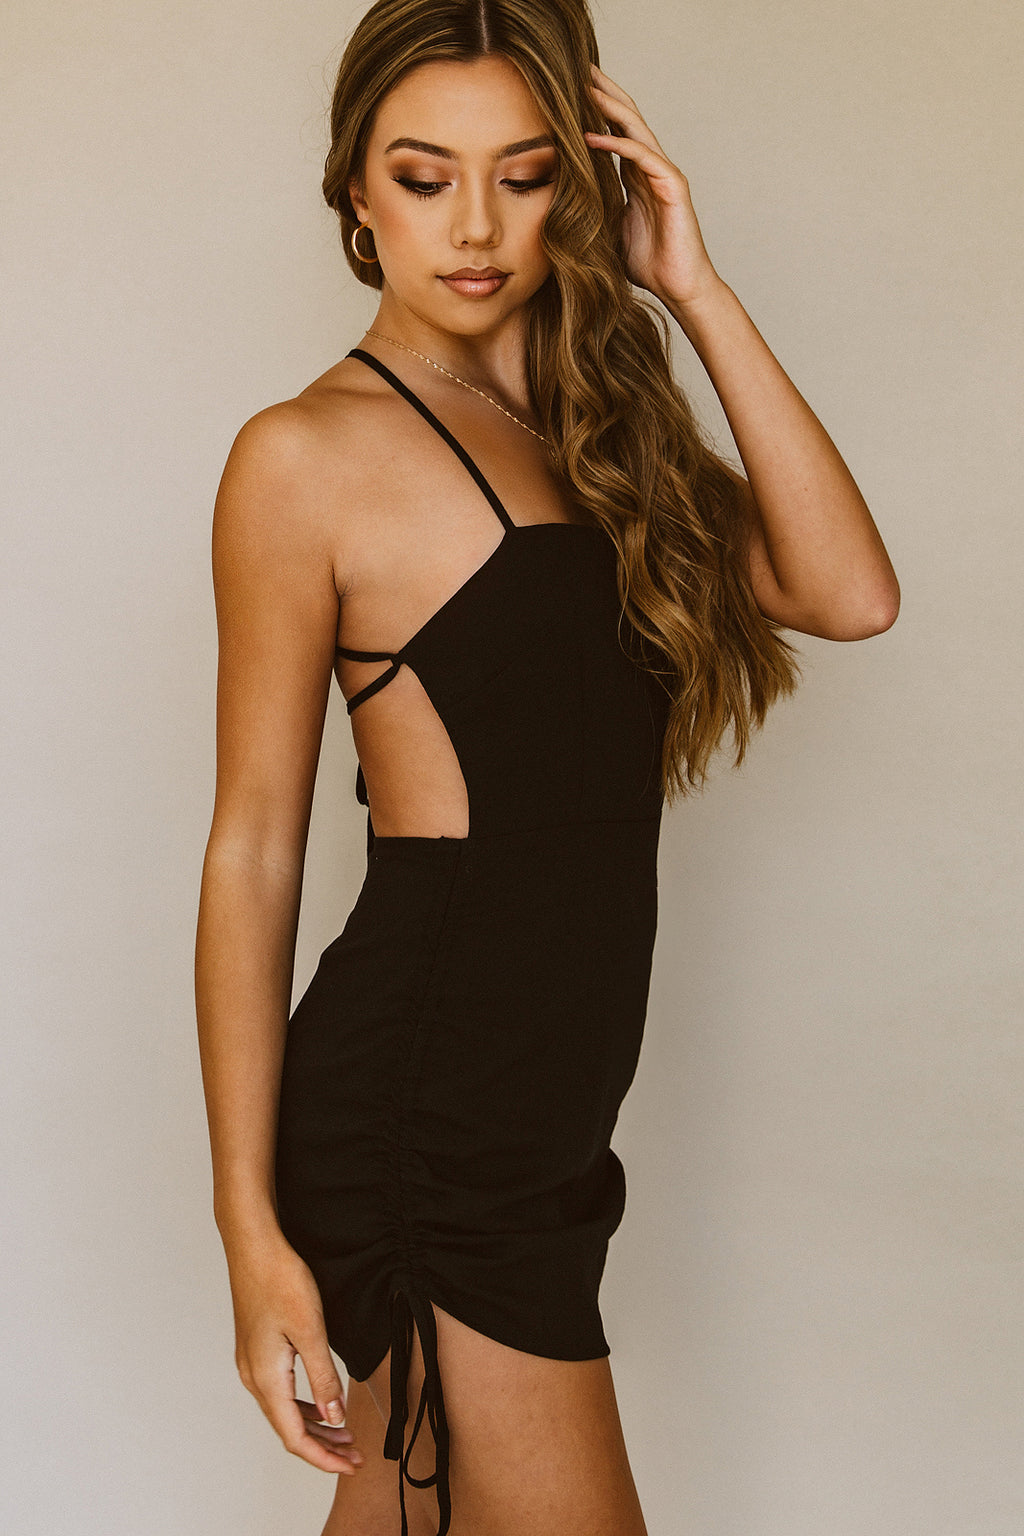 Beverly Hills Dress - Black